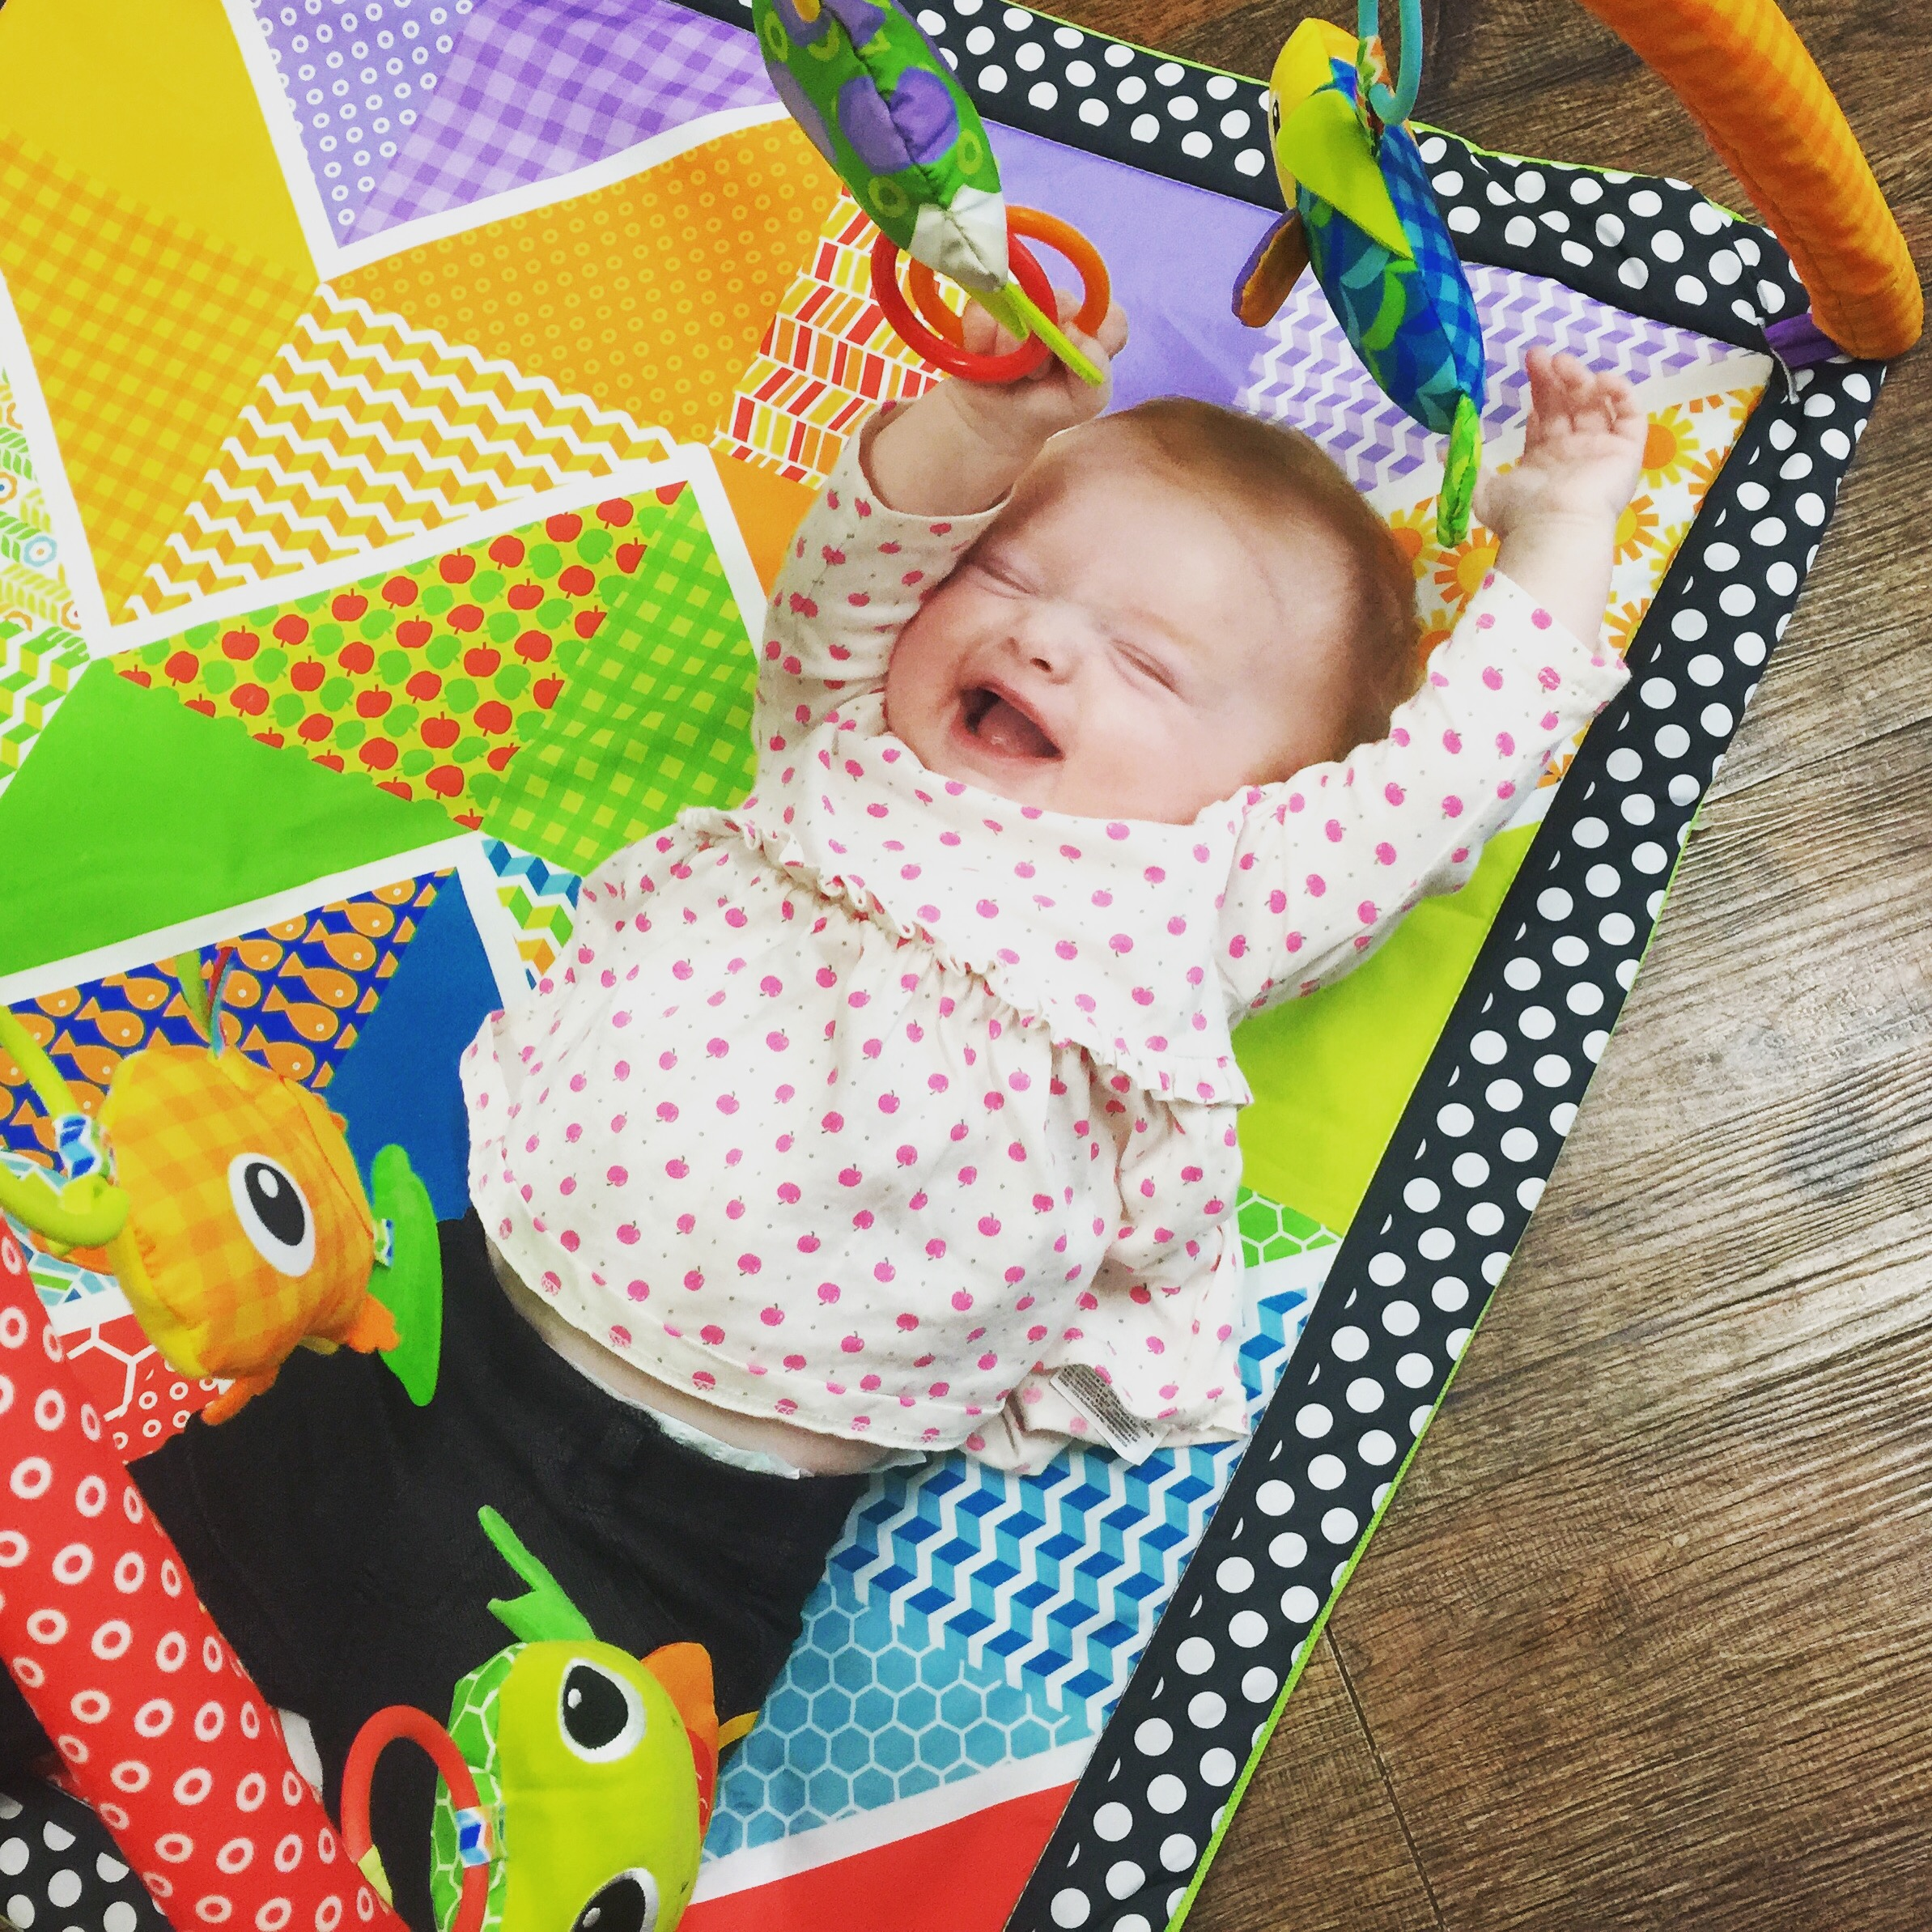 She loves playing on her mat and it now holds her attention for up to 45 minutes!